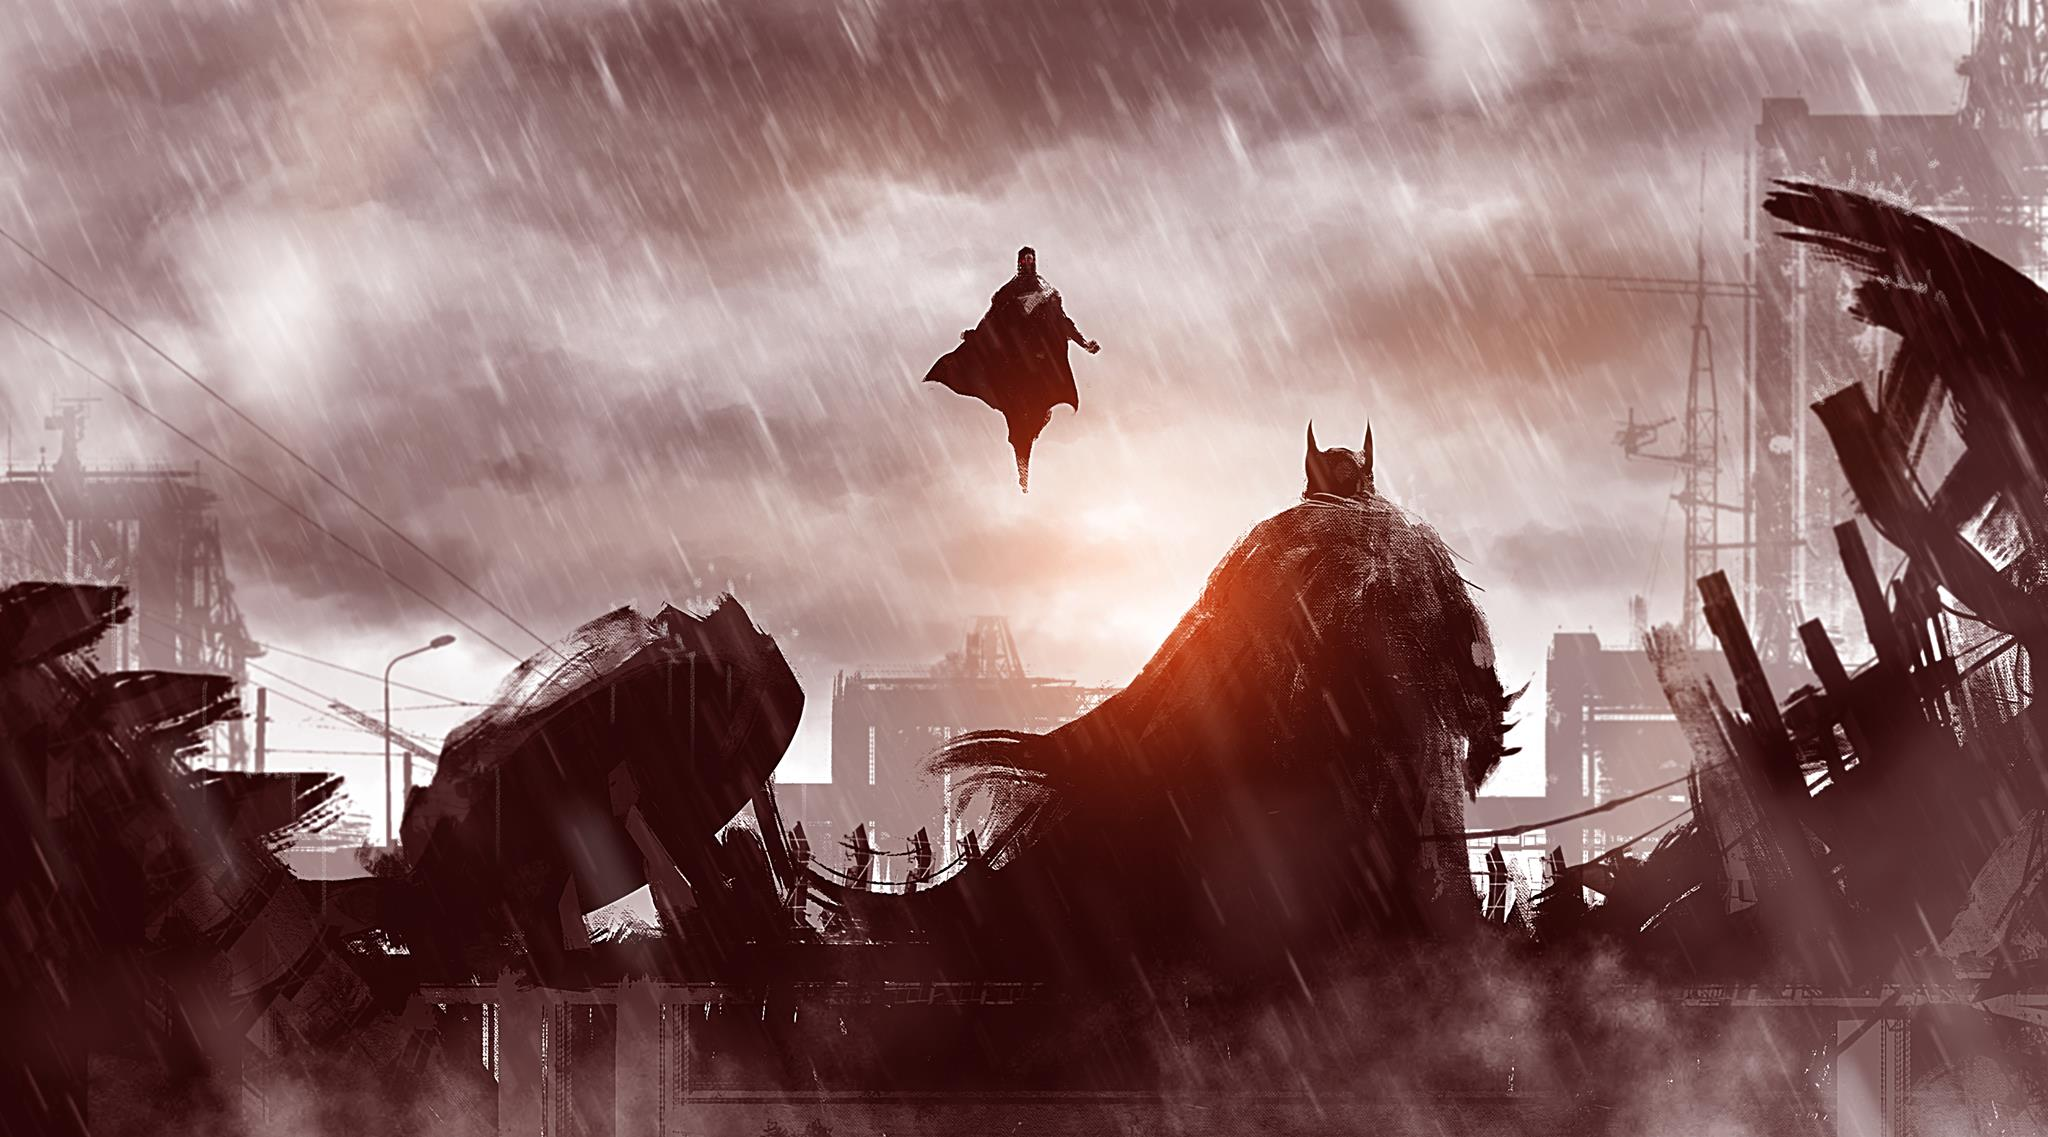 Batman Vs Superman Wallpapers Widescreen CD7H81Z   4USkY 2048x1137